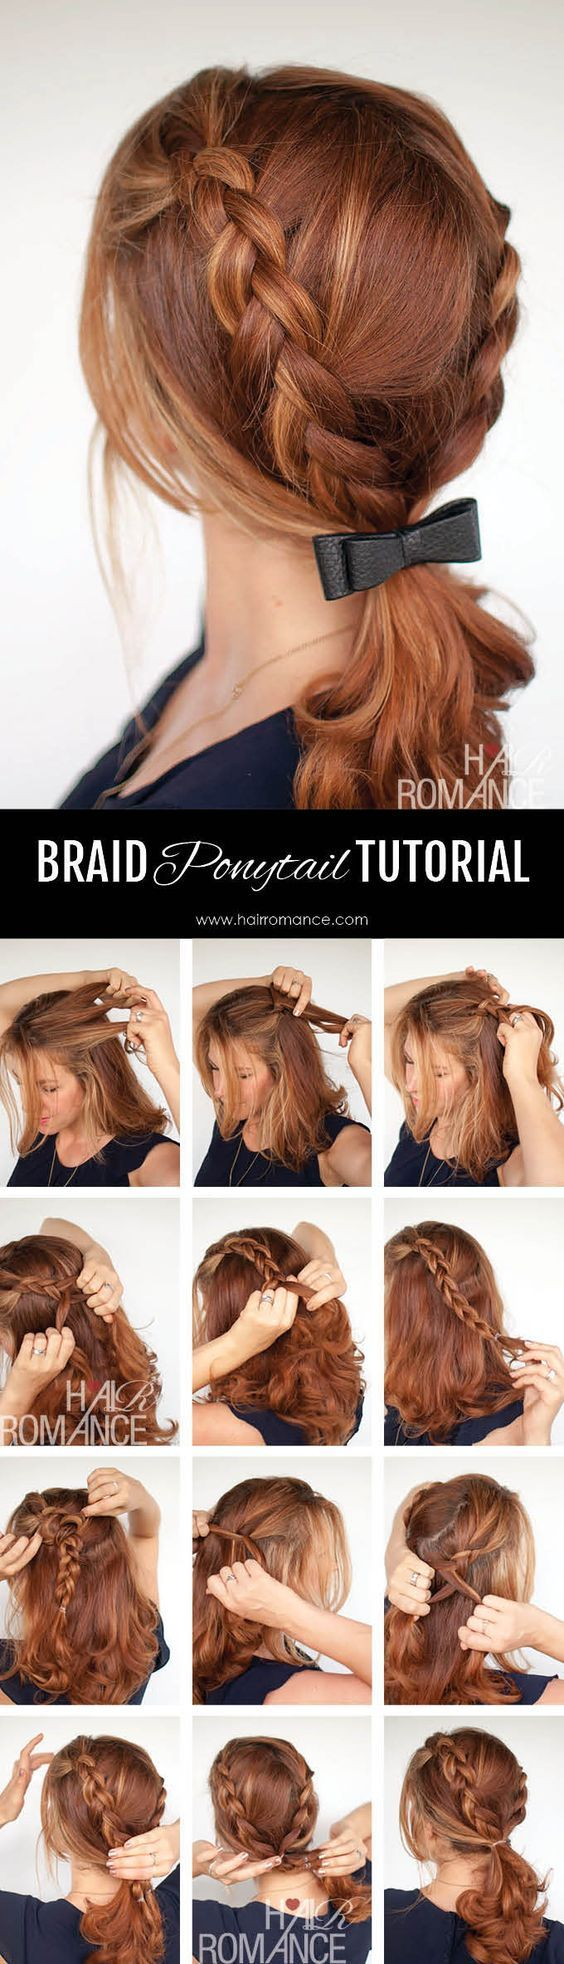 How to : 100 ทรงผมสวยไม่ซ้ำ พร้อมขั้นตอนการทำแบบ Step by Step  100  Hairstyles in Easy Step by Step Pictorials